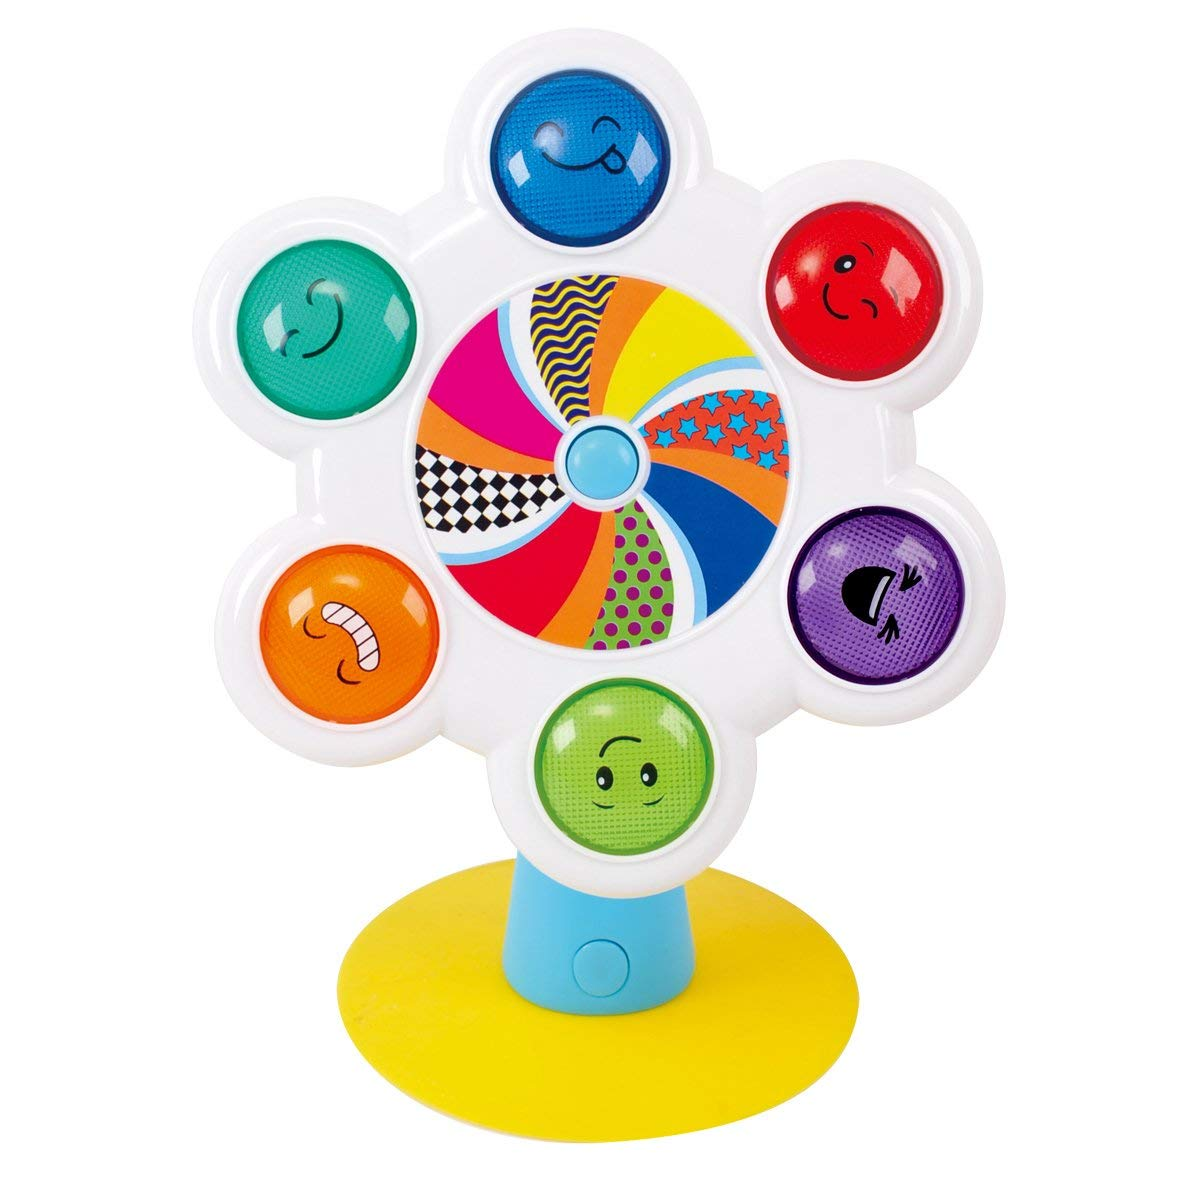 PlayGo Wheel Go Round Baby Spinning Toy - Brain Developmental Toy for Infant Kids Early Learning - for Ages 6 Months & Up